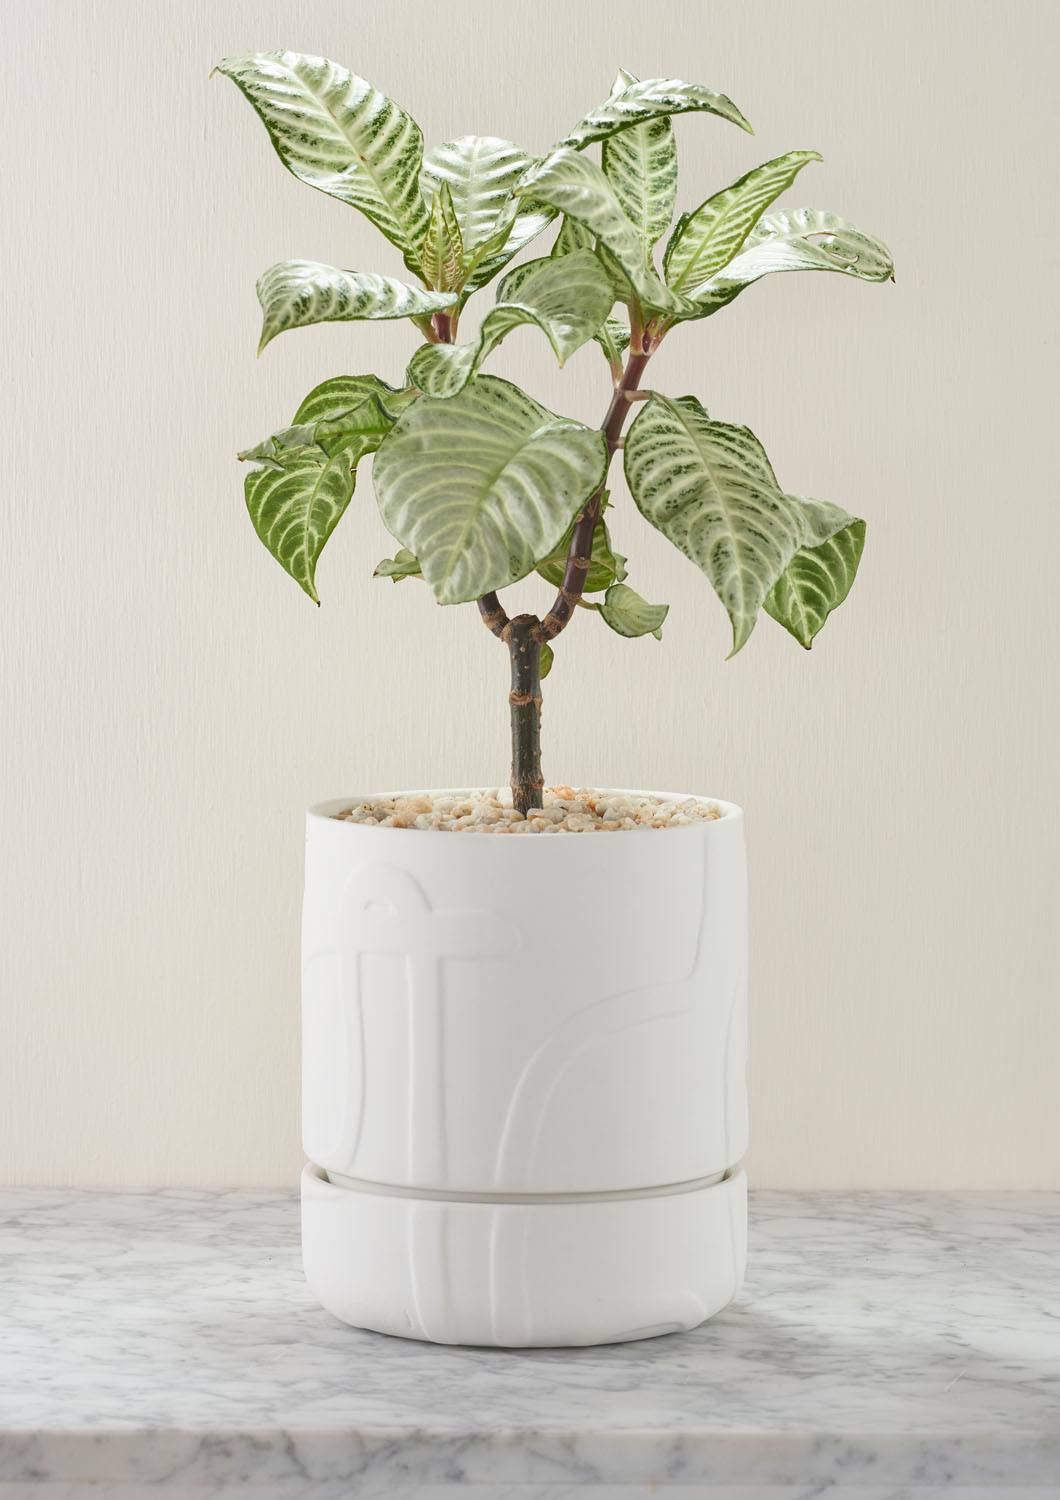 Angus & Celeste Abstract Relief Plant Pot - Brush Line Thick White Styled